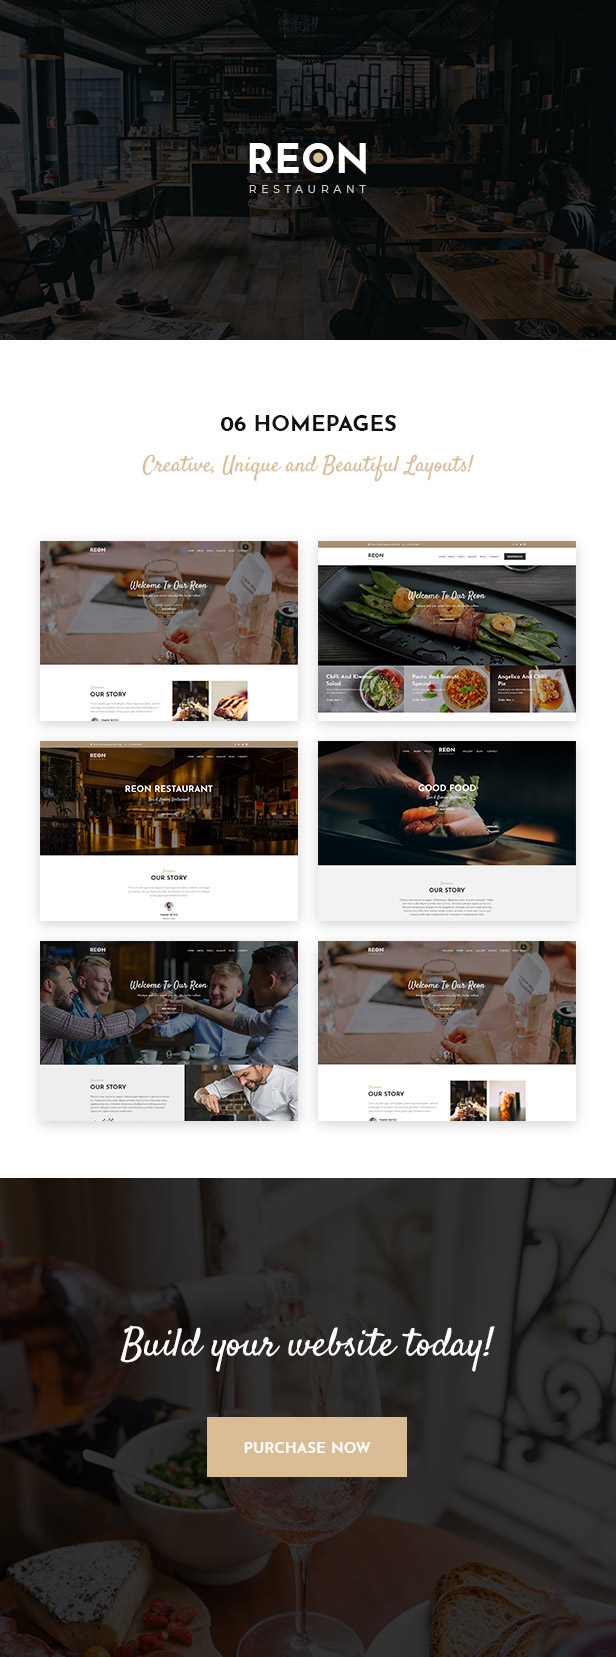 Reon - Restaurant WordPress Vorlage